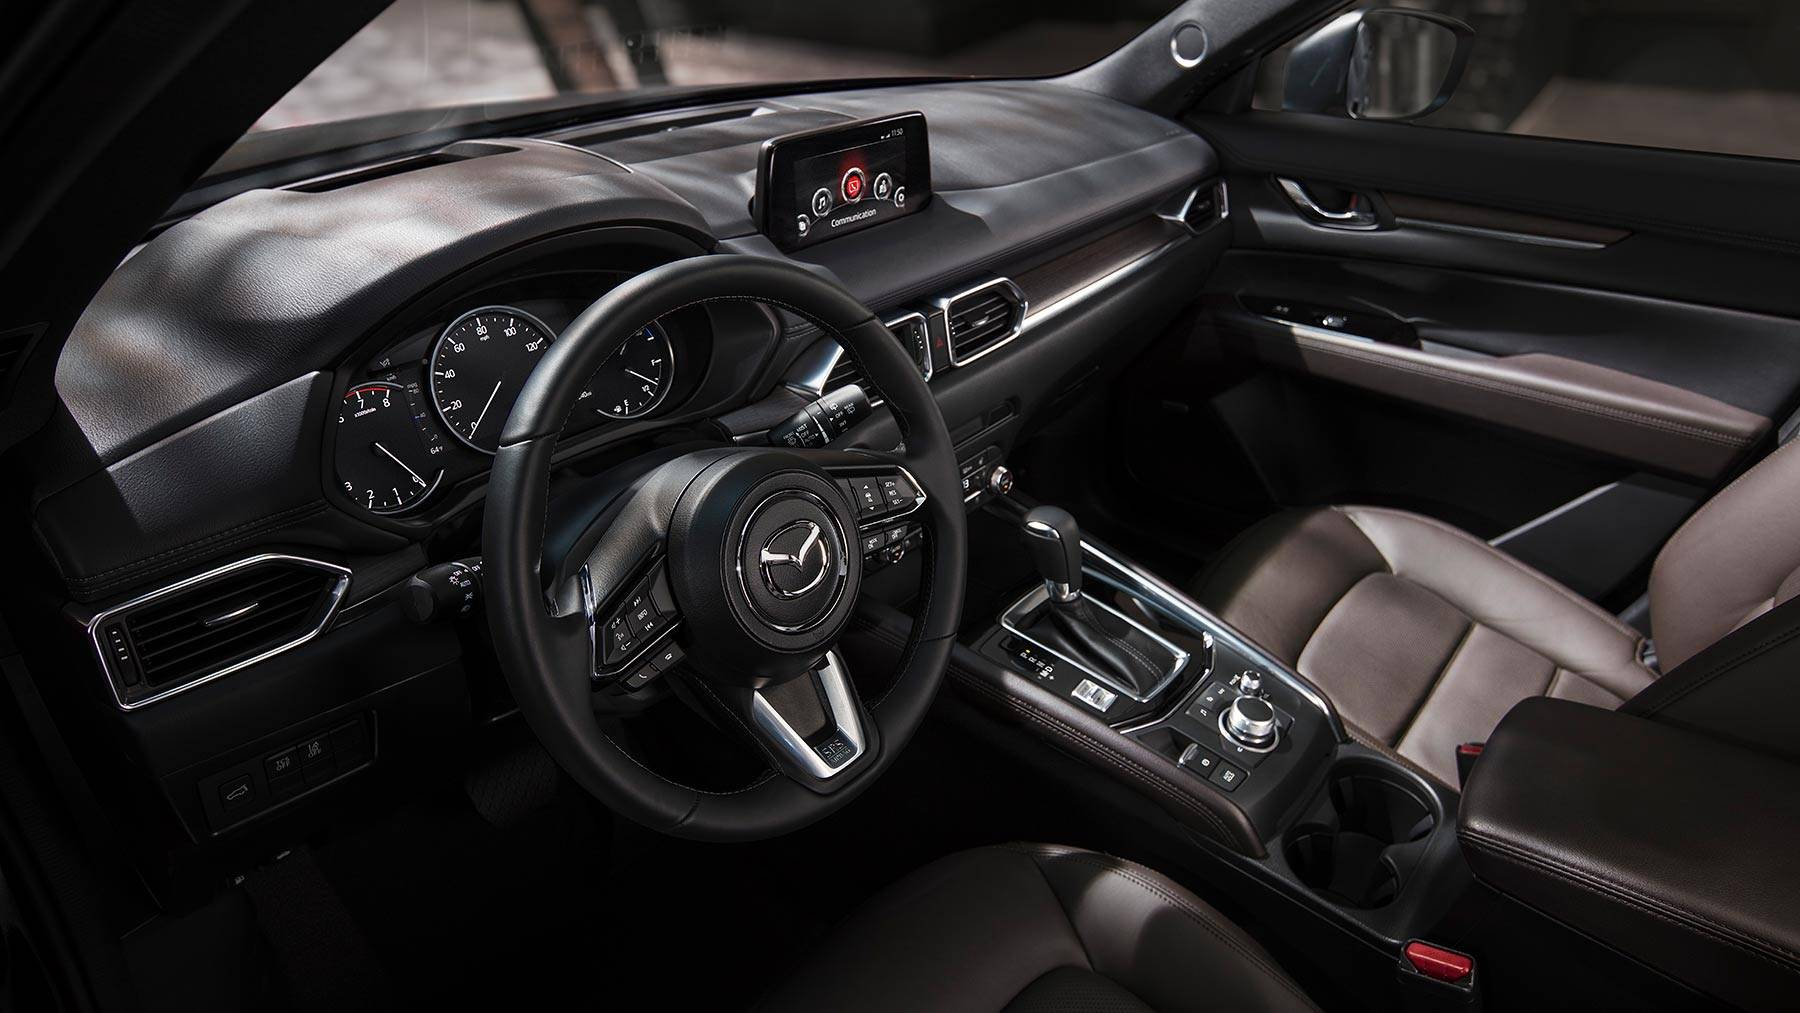 Secure Cabin of the 2019 Mazda CX-5